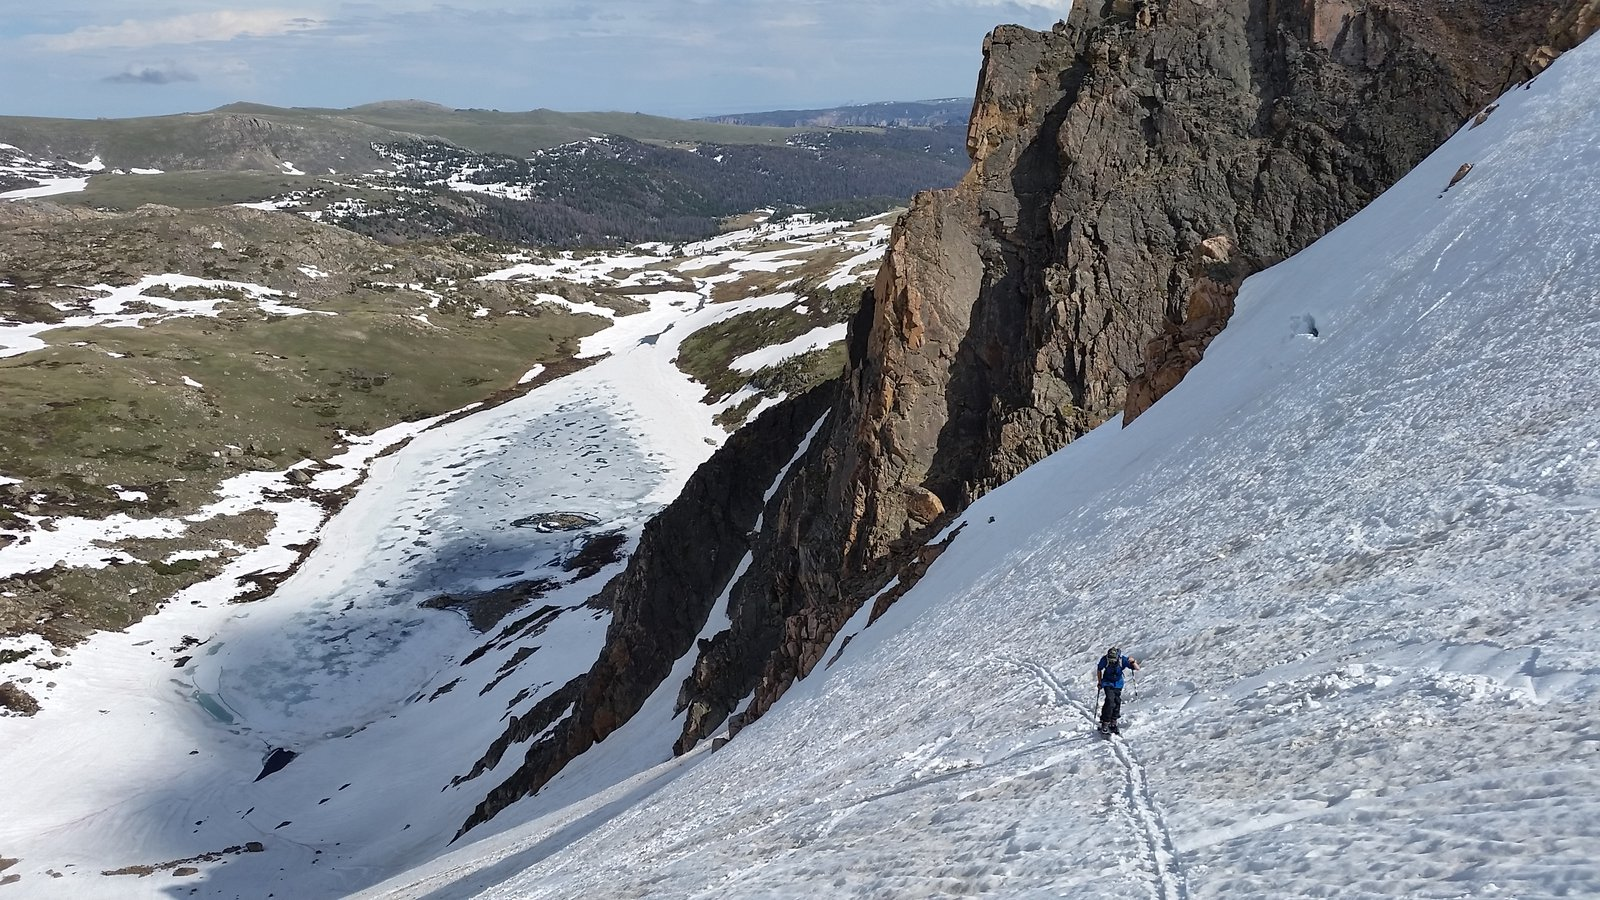 Skiing up the headwall